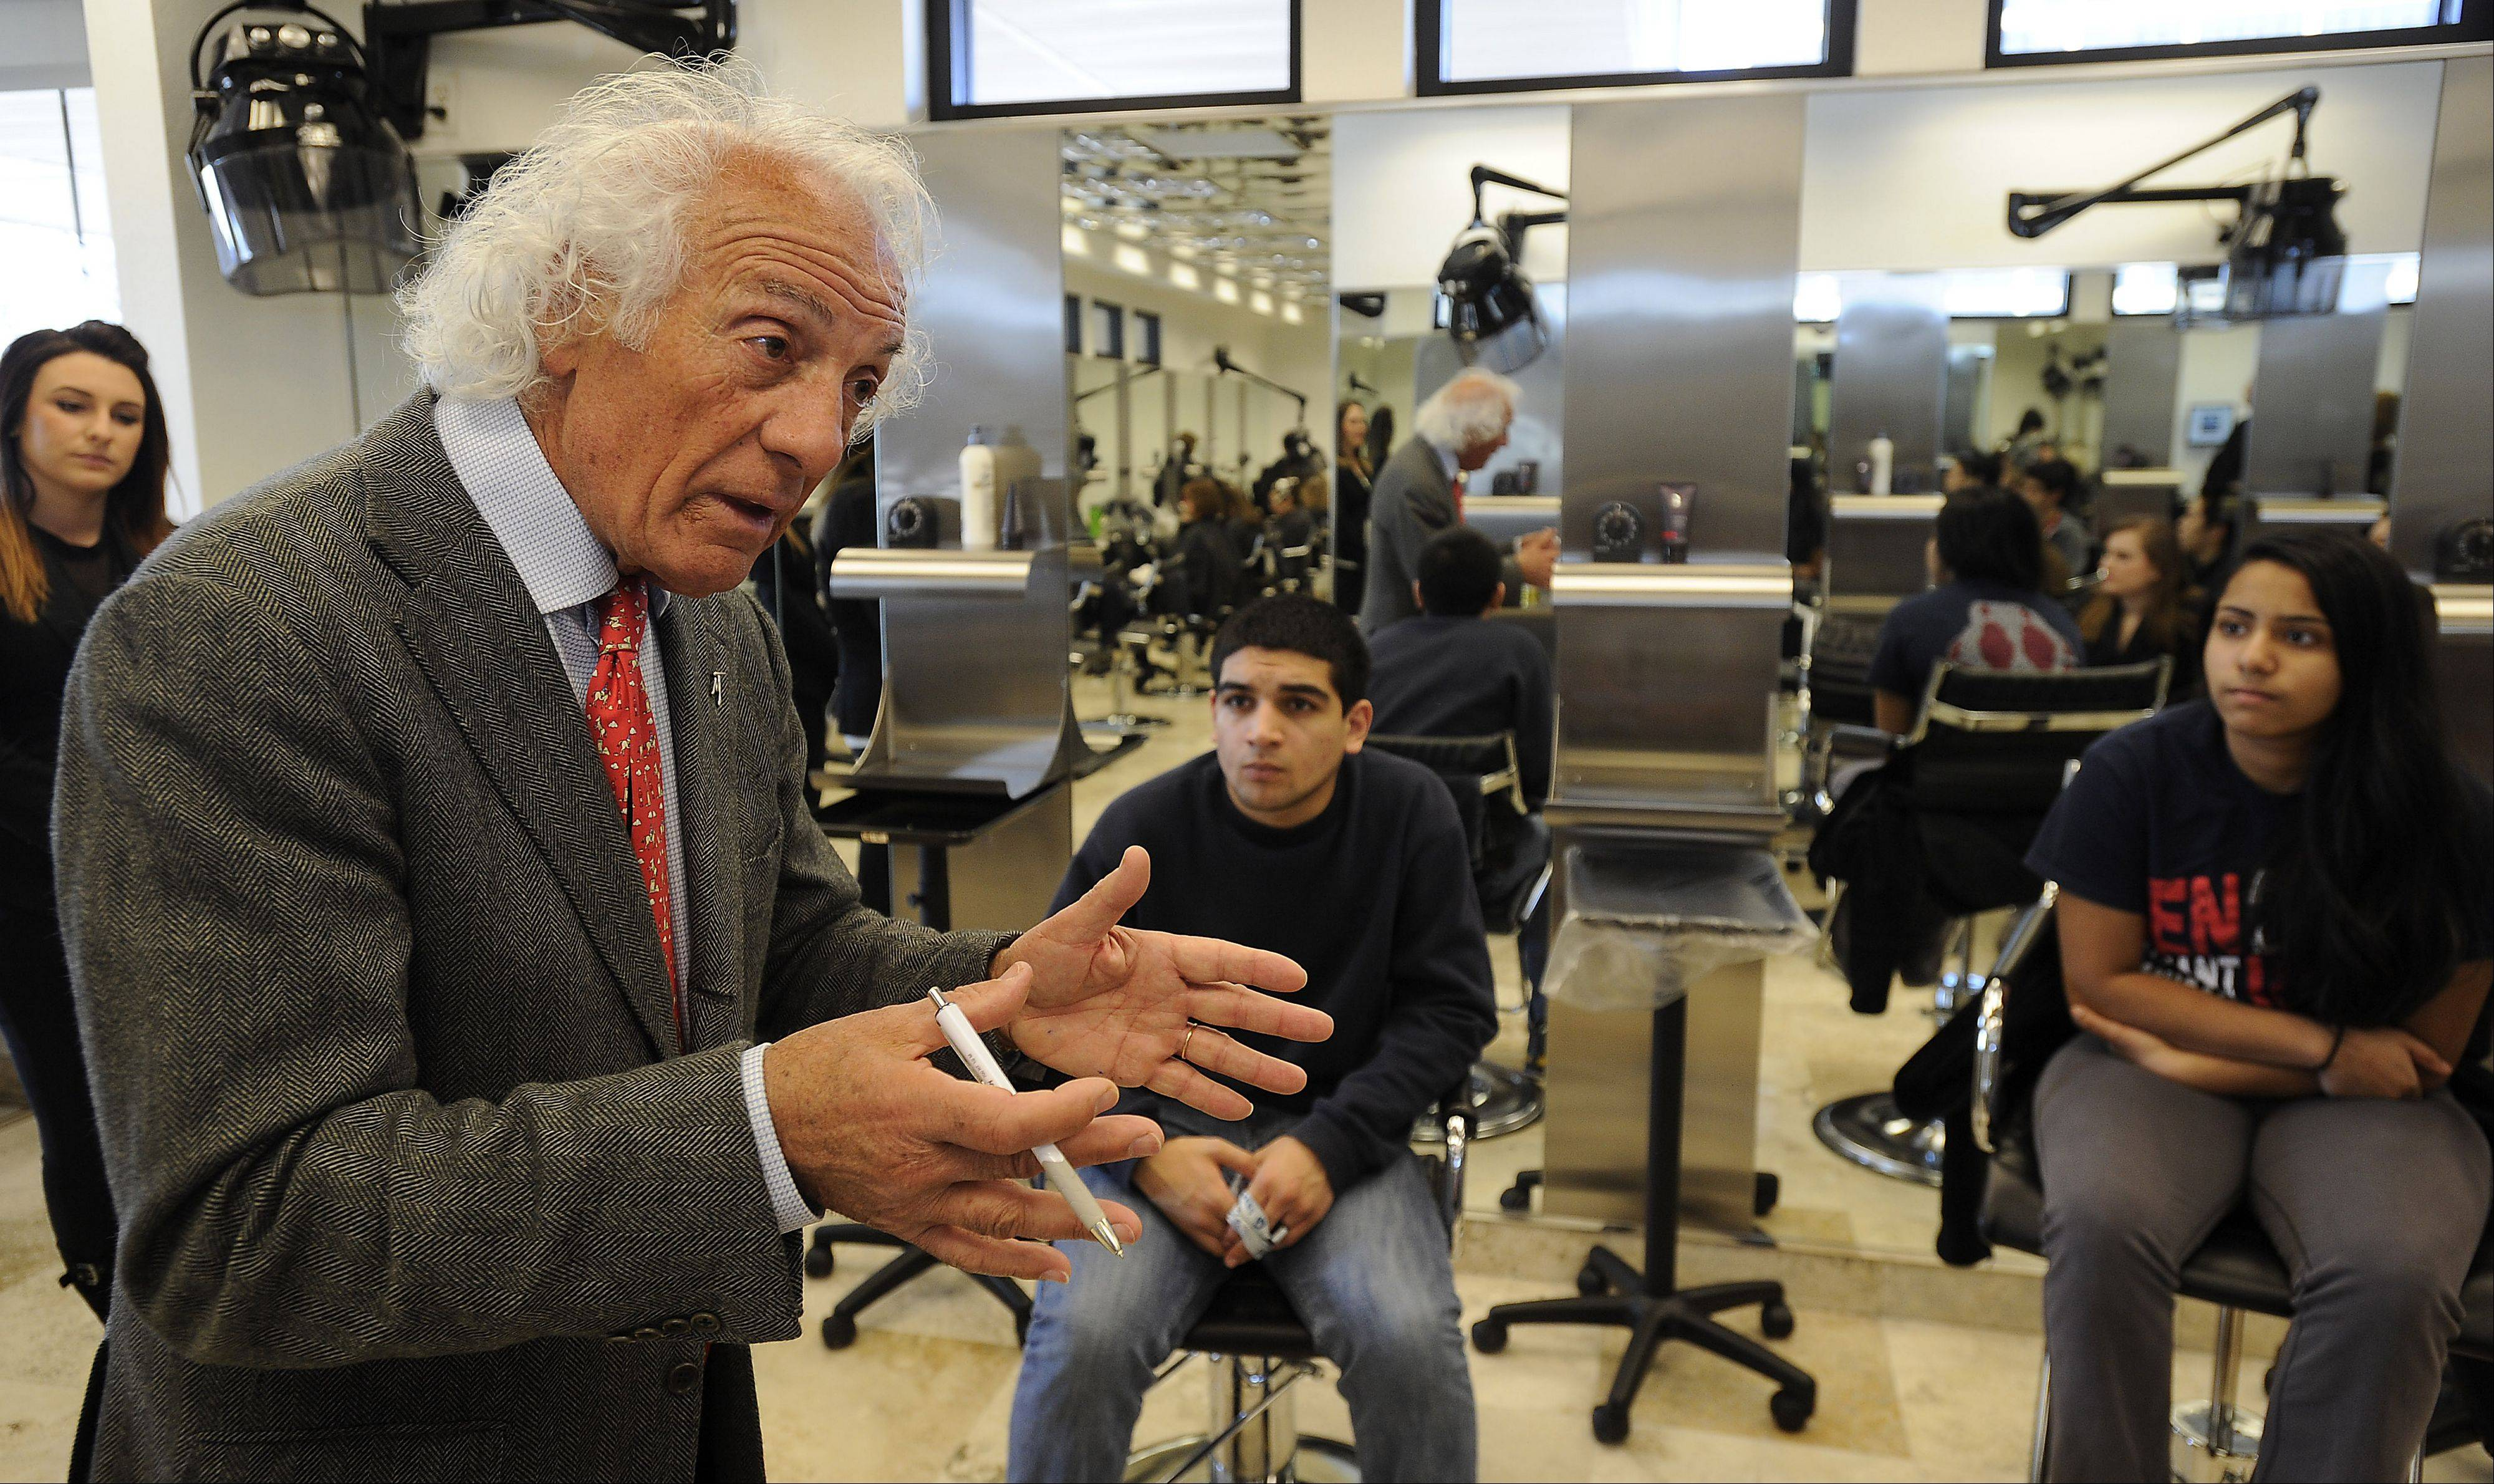 High school students greet Mario Tricoci in Schaumburg on Wednesday. Tricoci was at his salon speaking to the Young Entrepreneurs Academy participants. The program teaches students about entrepreneurship and professional presence.